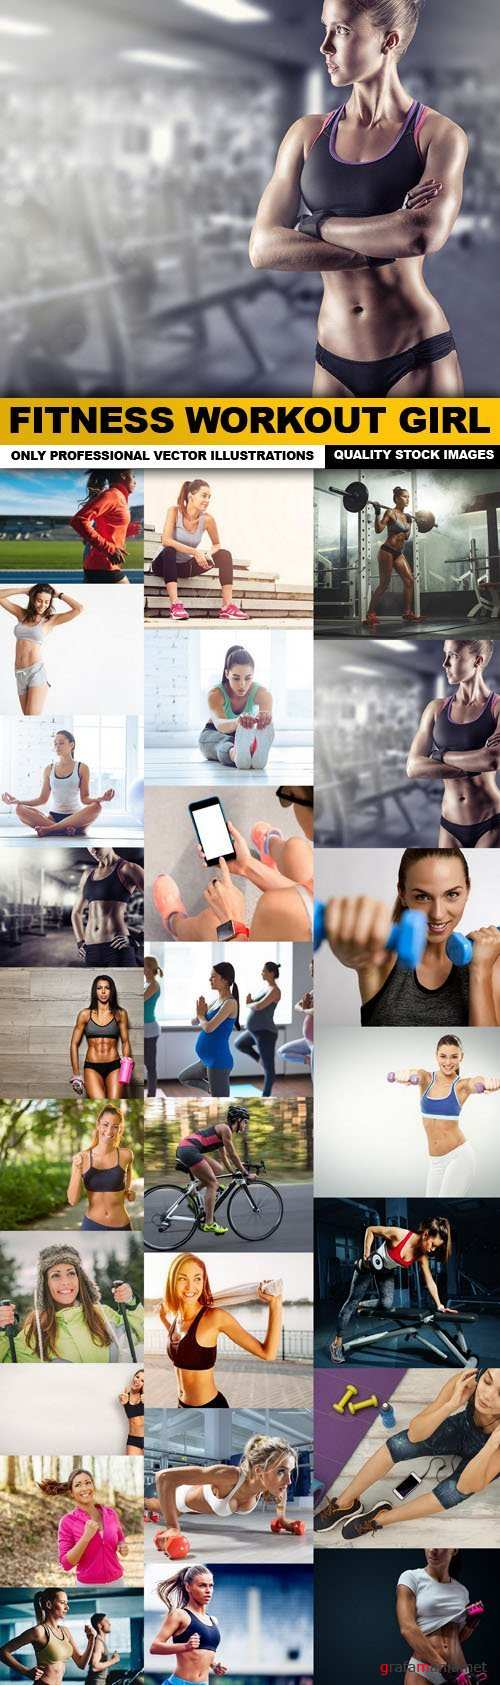 Fitness Workout Girl - 25 HQ Images